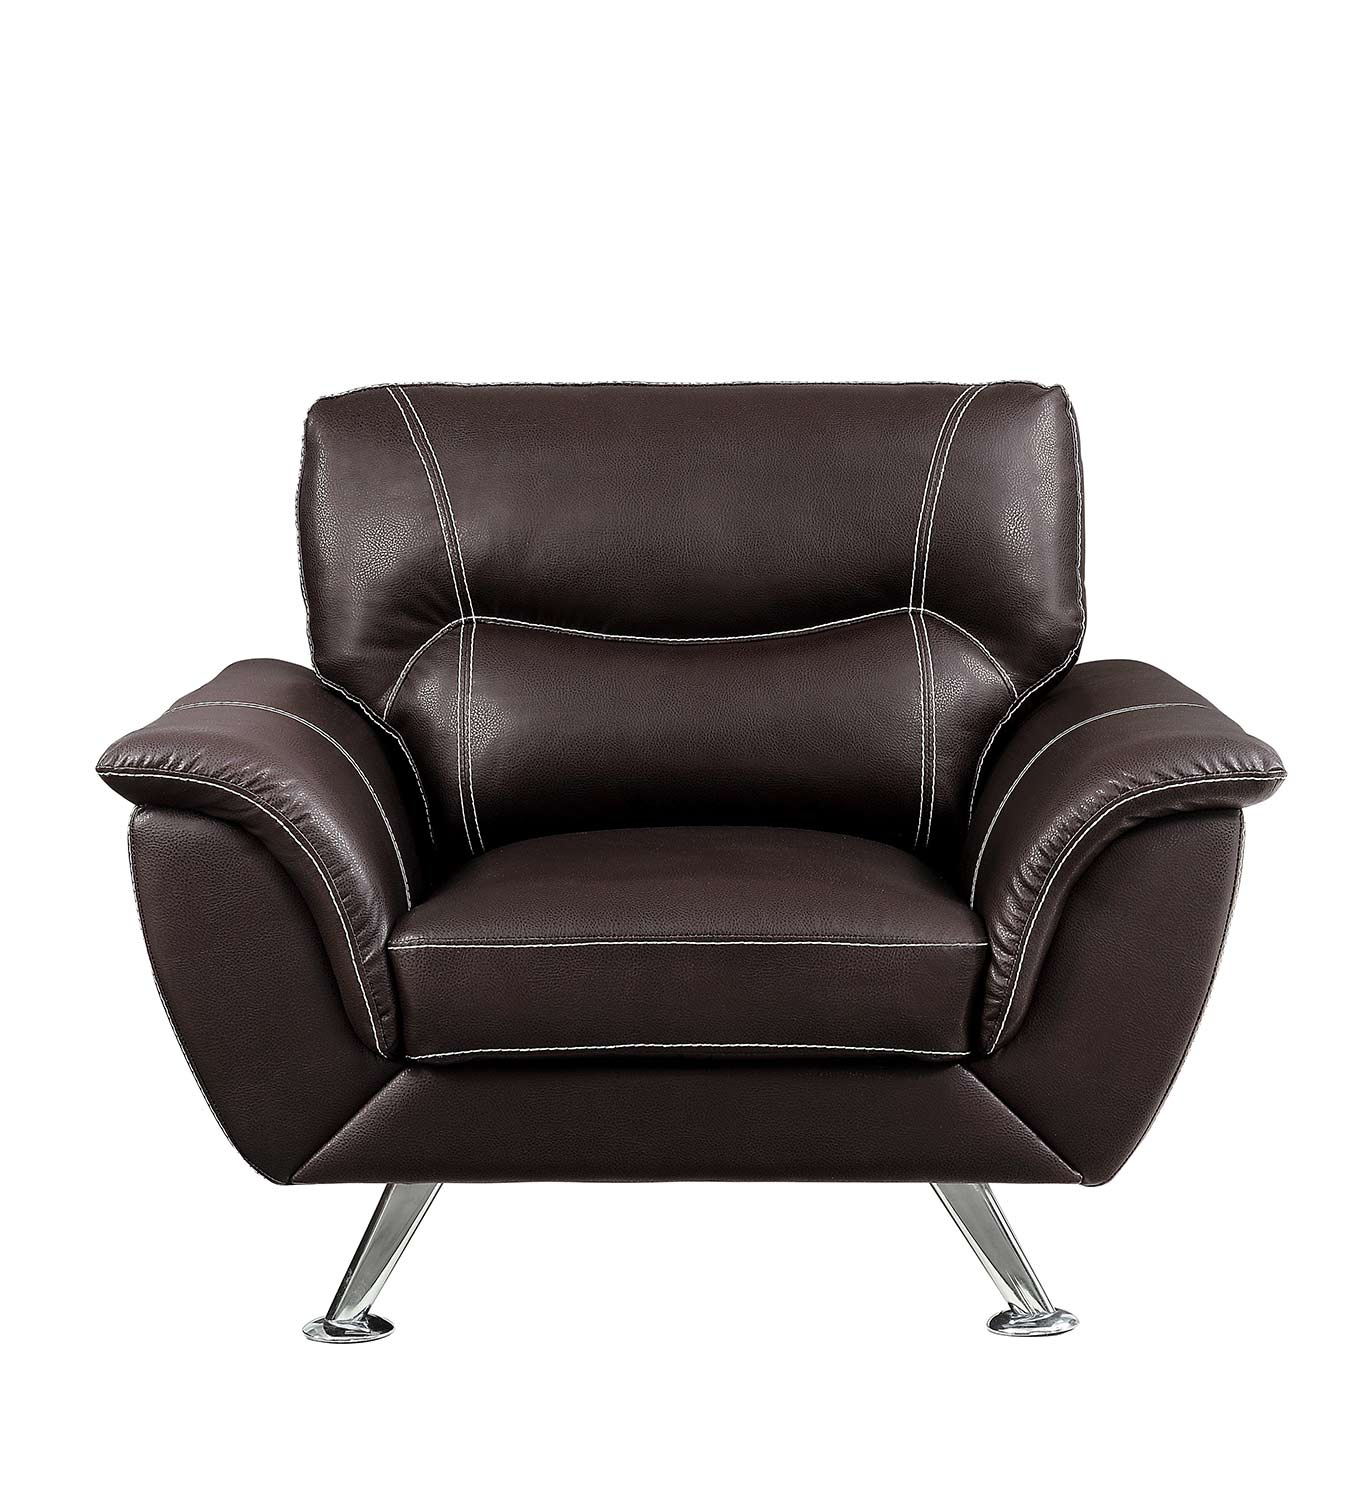 Homelegance Jambul Chair - Dark Brown - Dark brown bi-cast vinyl